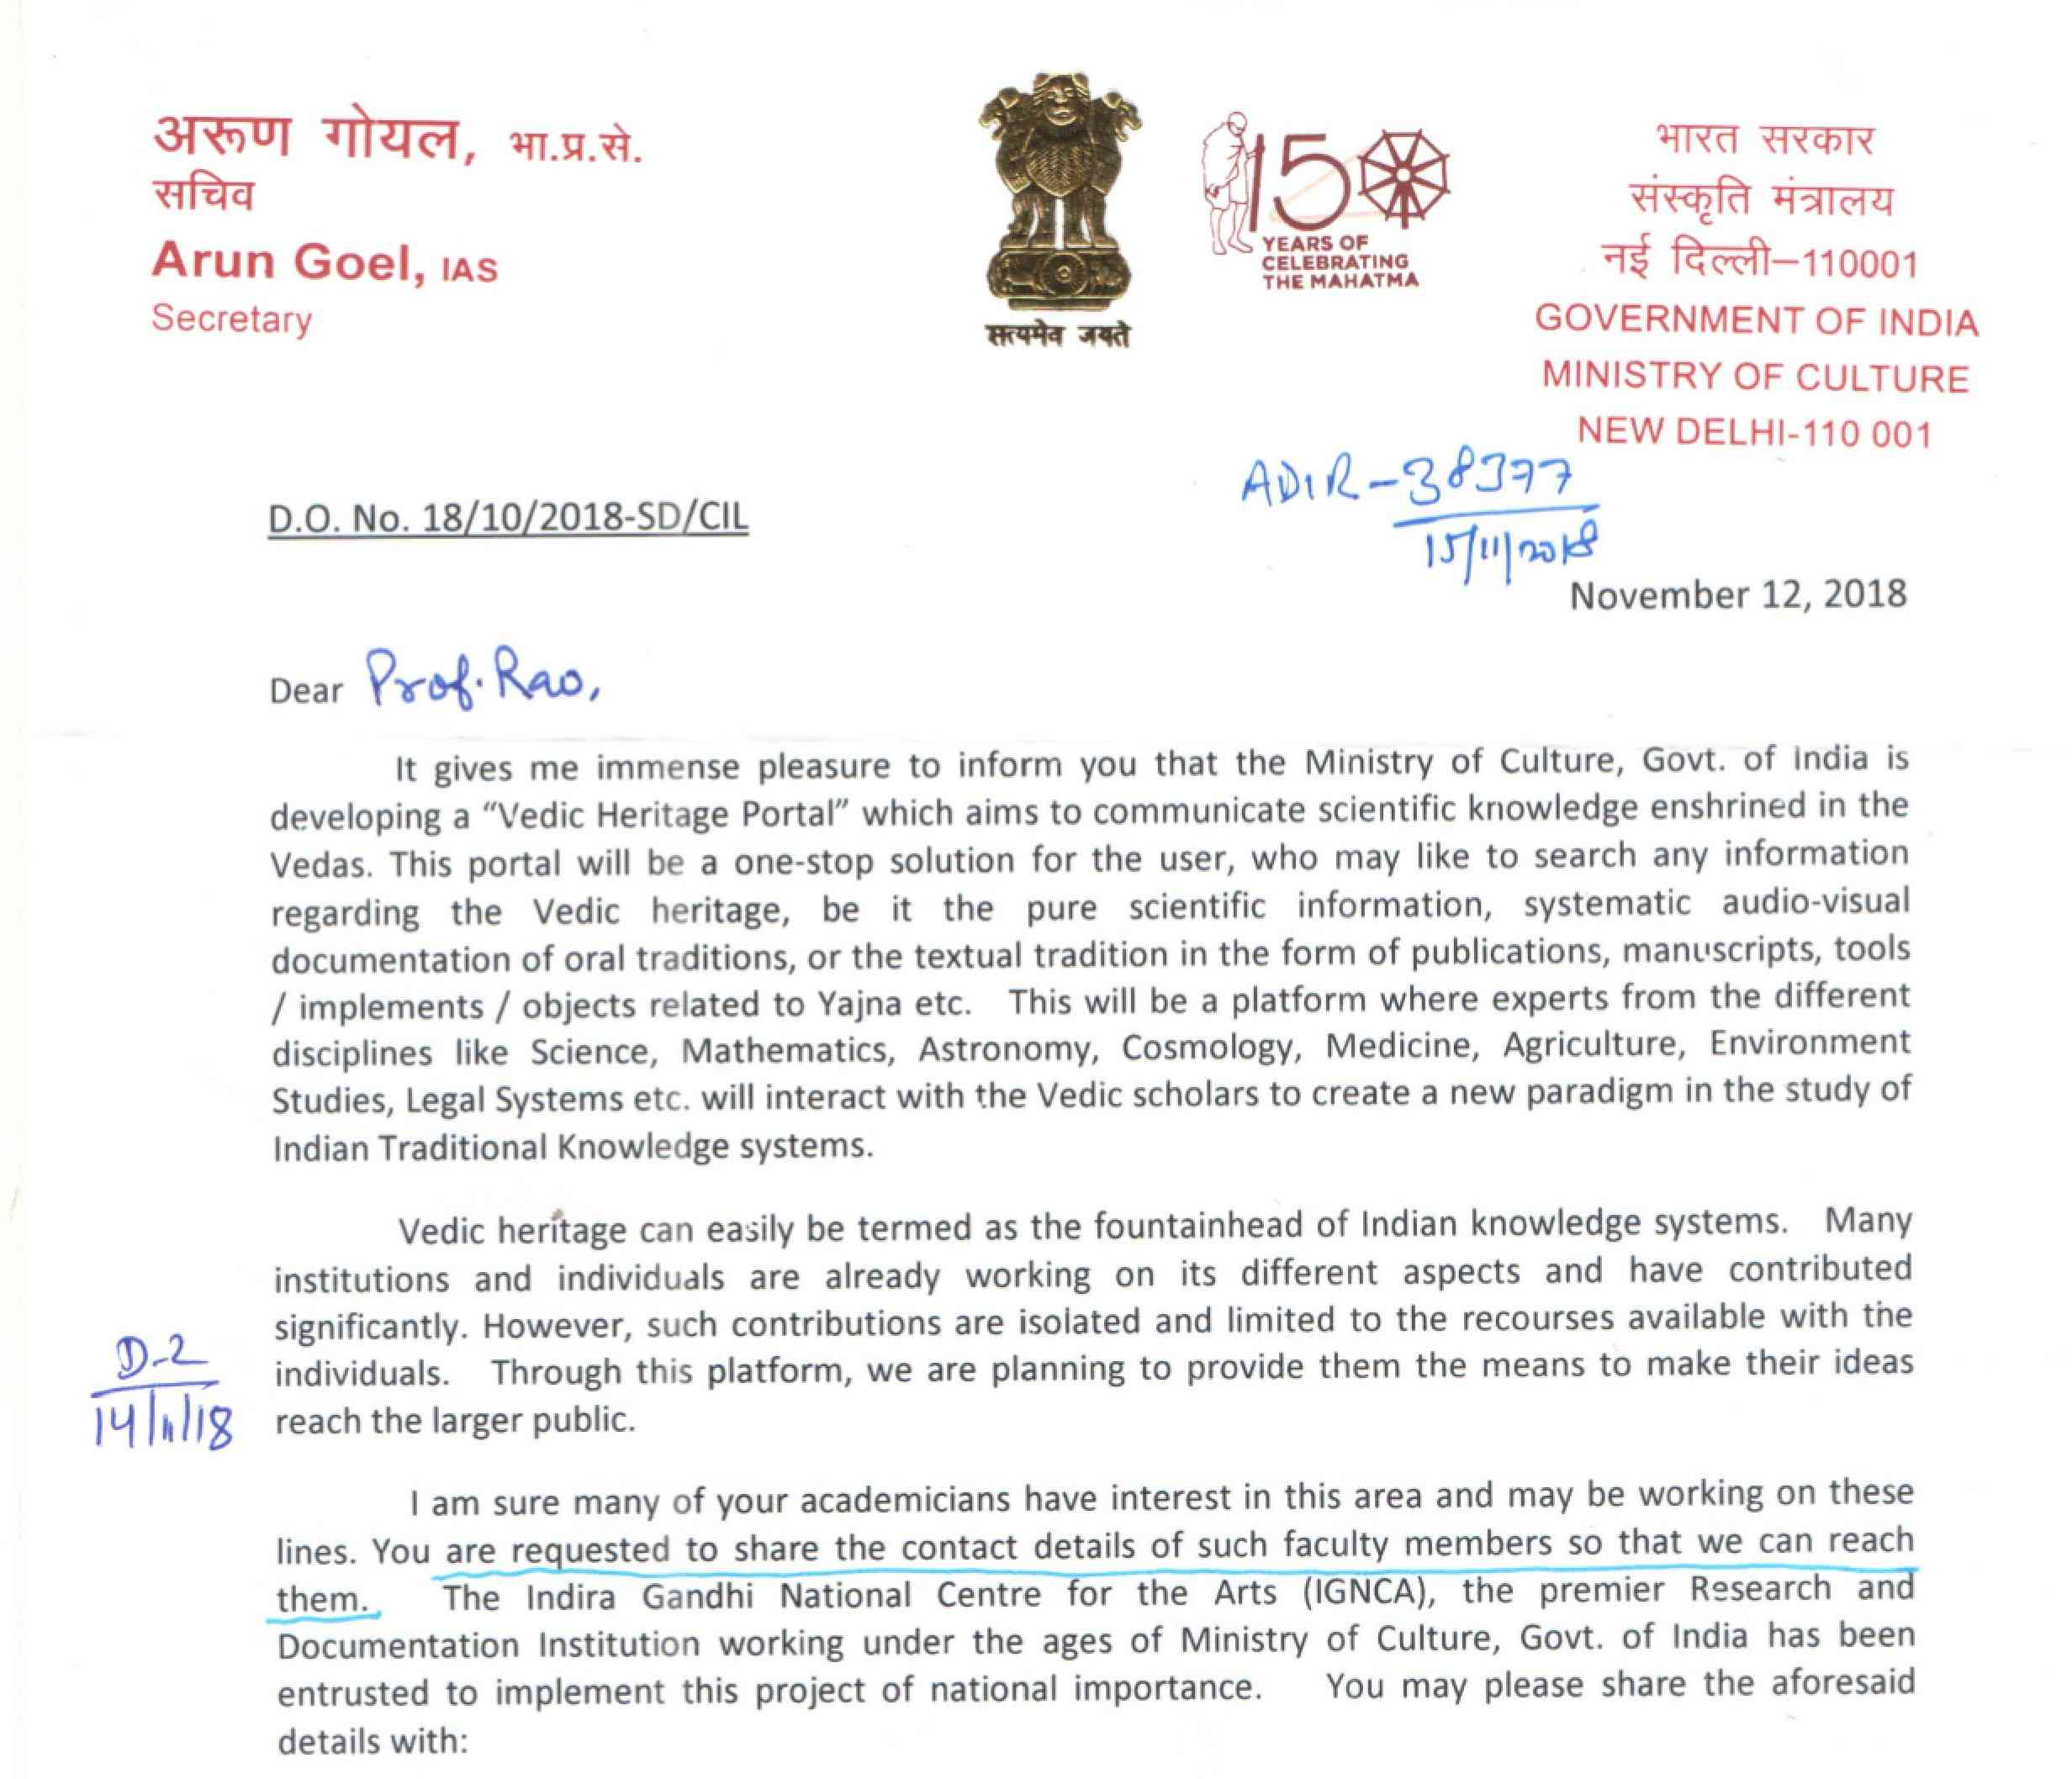 The letter sent to Indian Institute of Technology, Delhi.